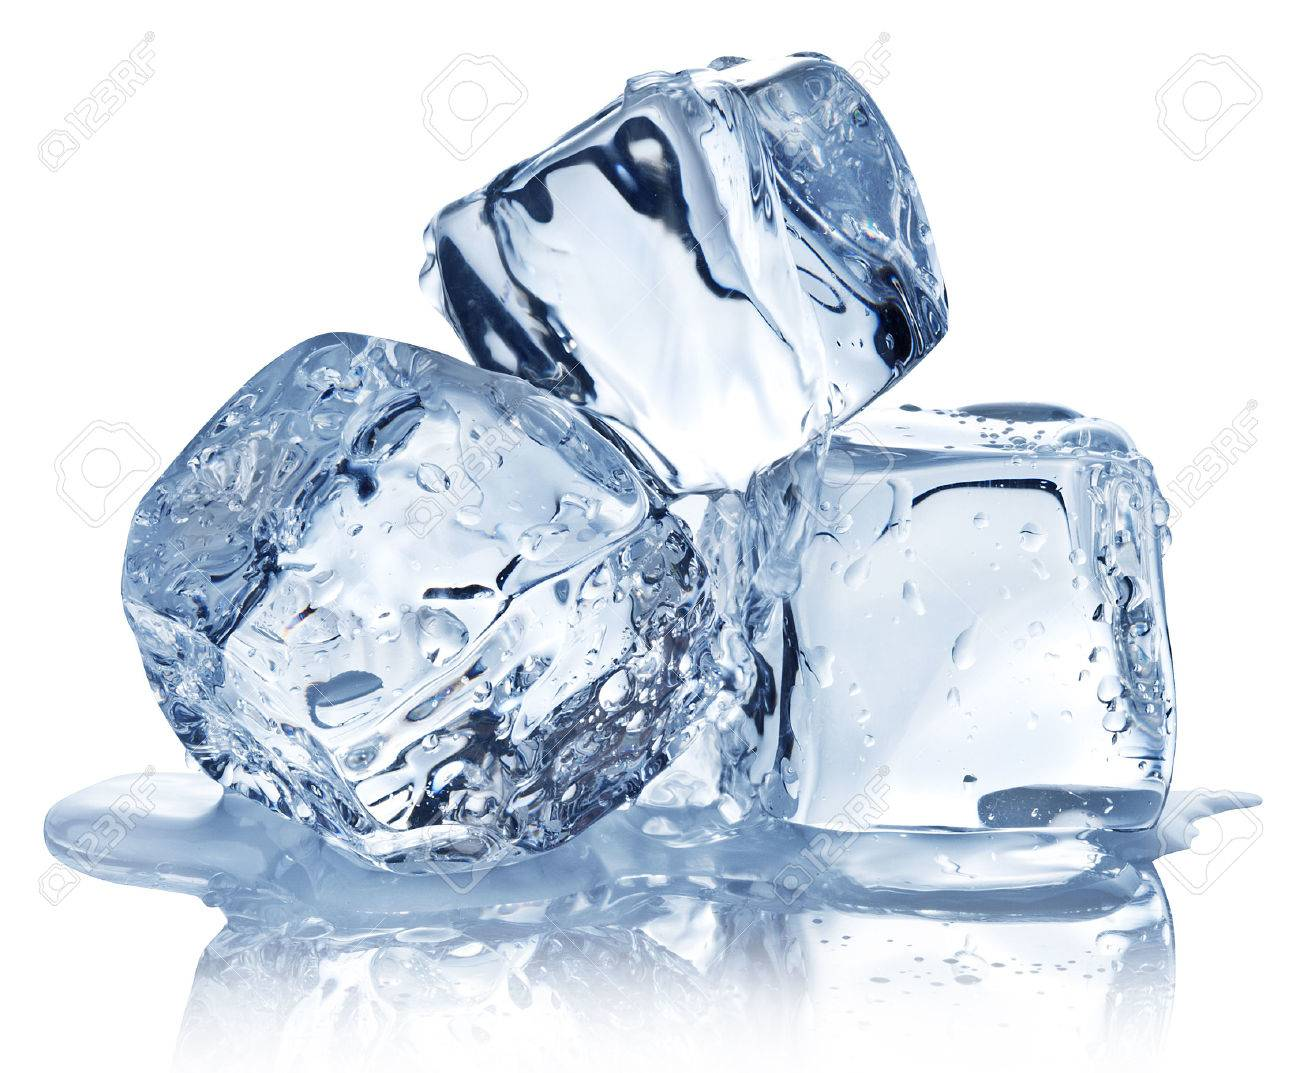 Three ice cubes on white background. Clipping pats. - 29977986